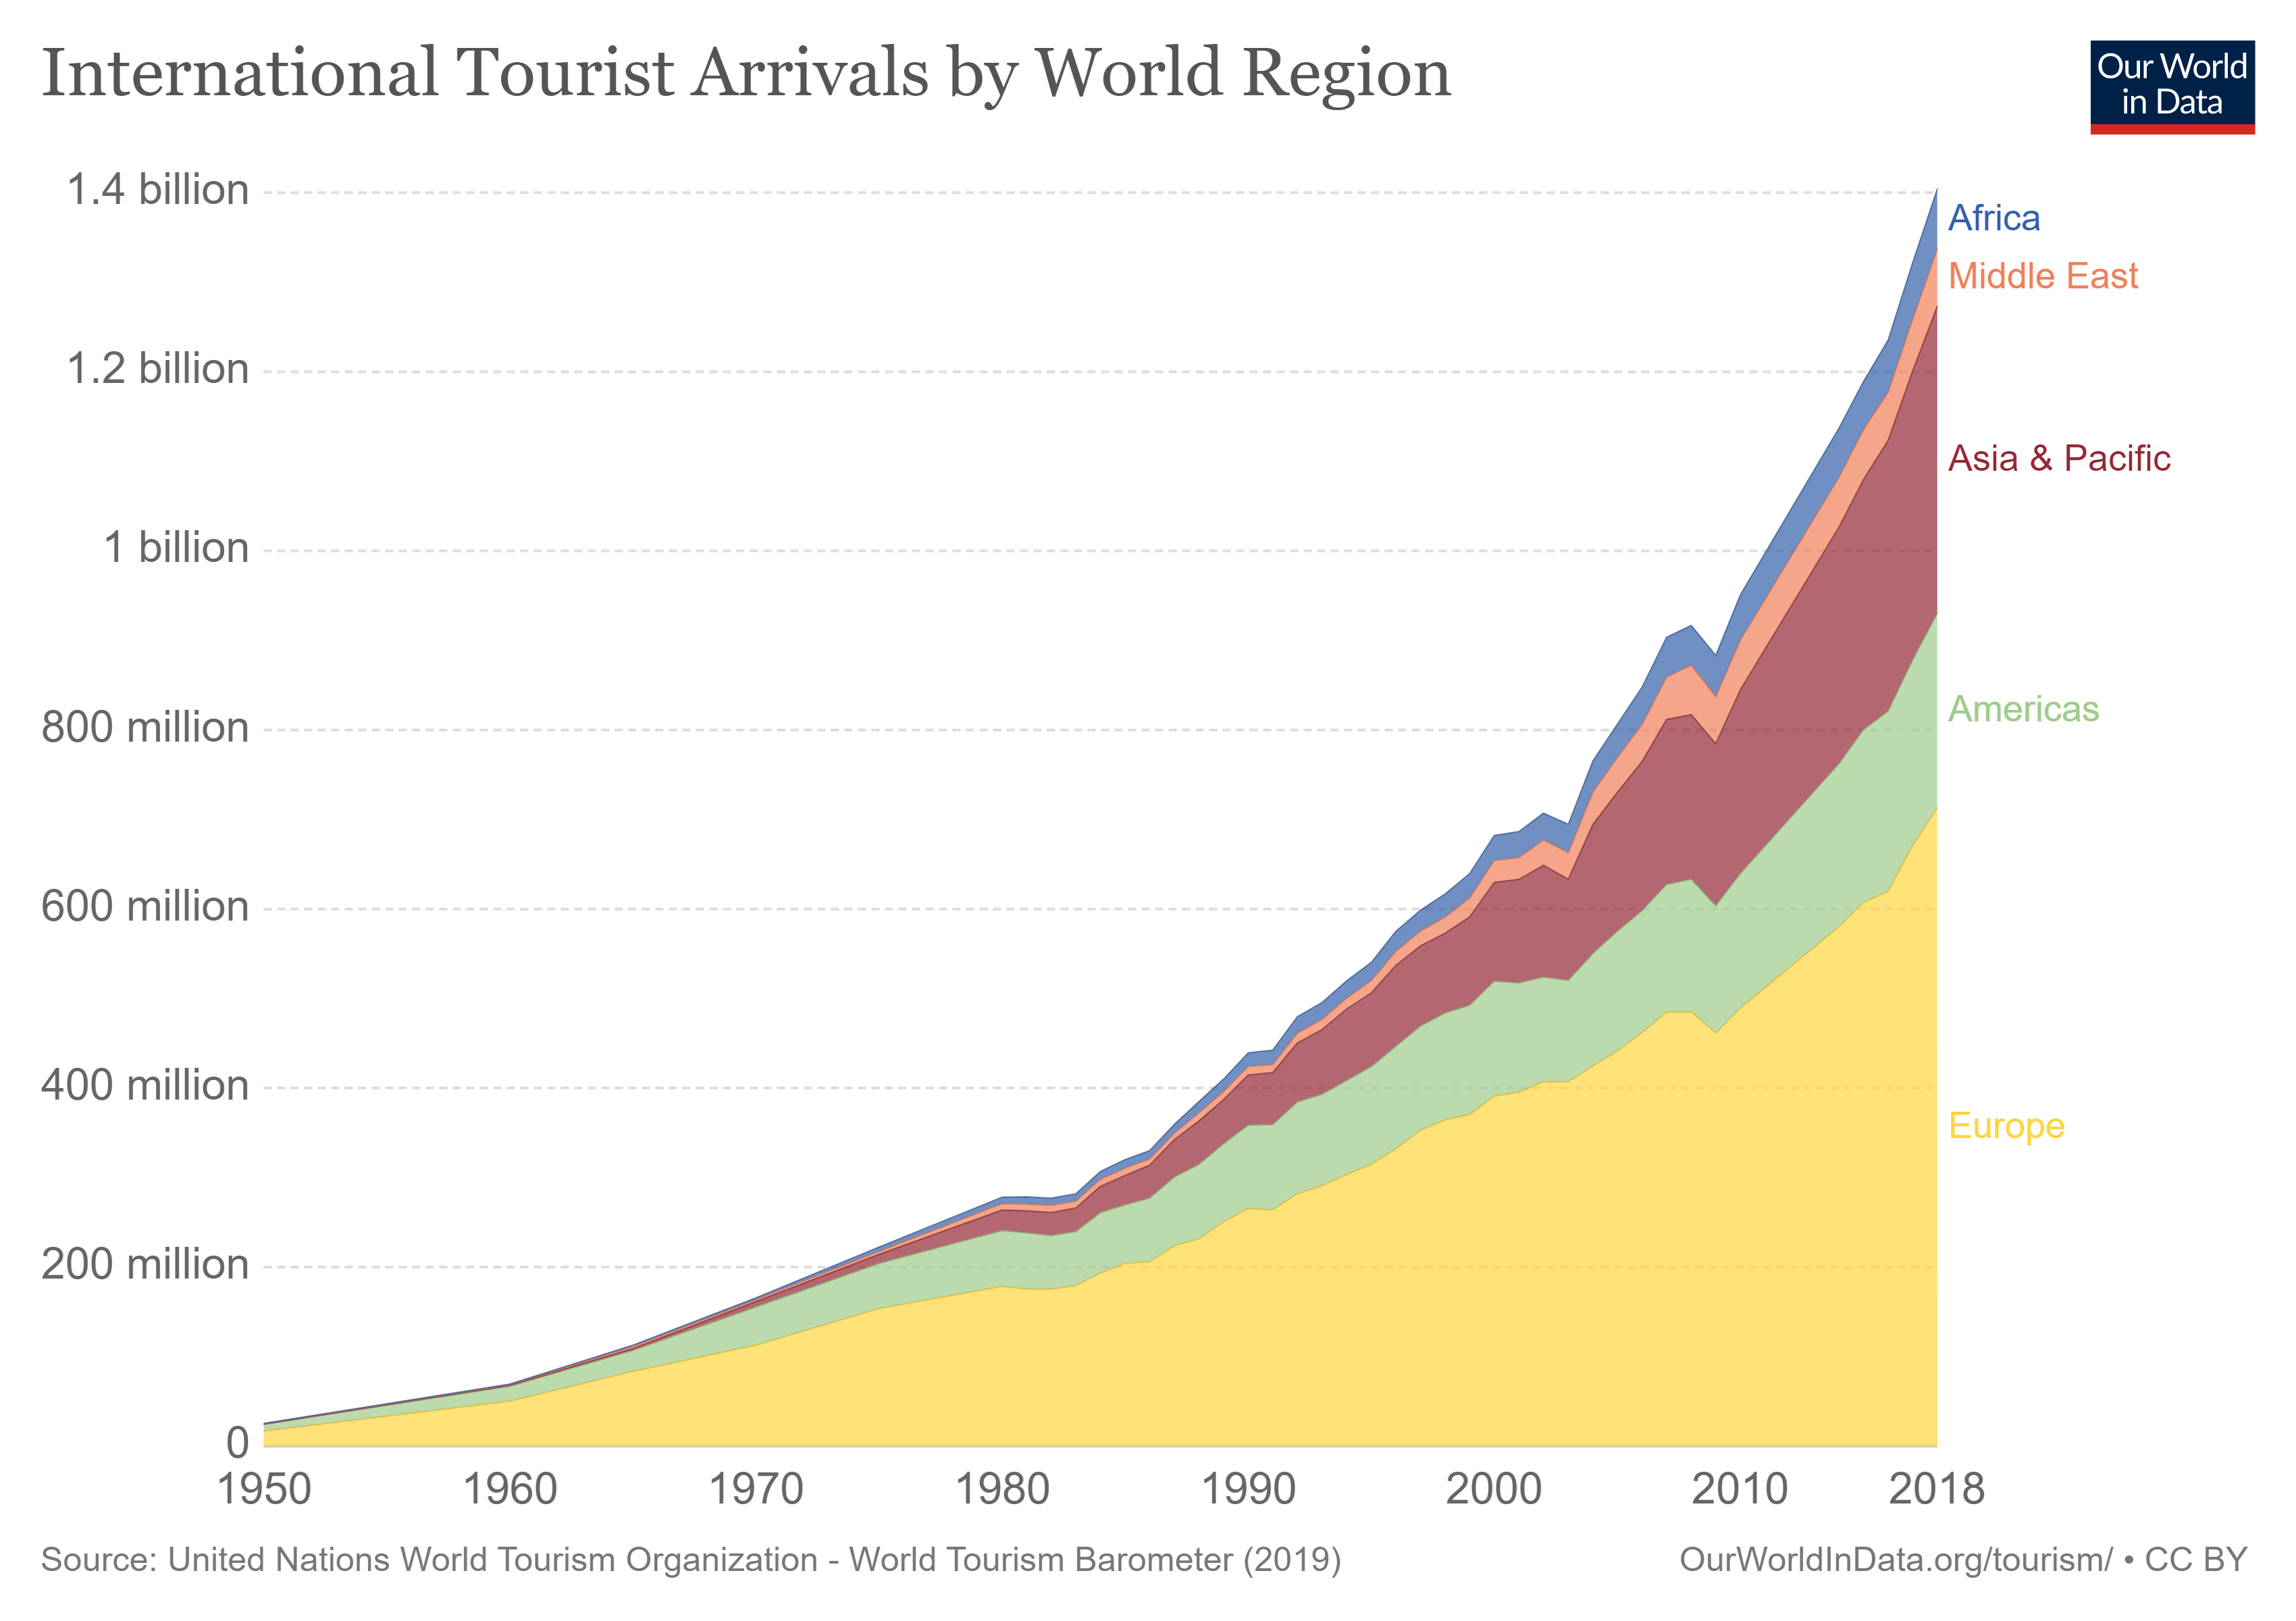 The United Nations World Tourism Organization (UNWTO) estimates that internationally there were just 25 million tourist arrivals in 1950. 68 years later this number has increased to 1.4 billion international arrivals per year. This is a 56-fold increase.